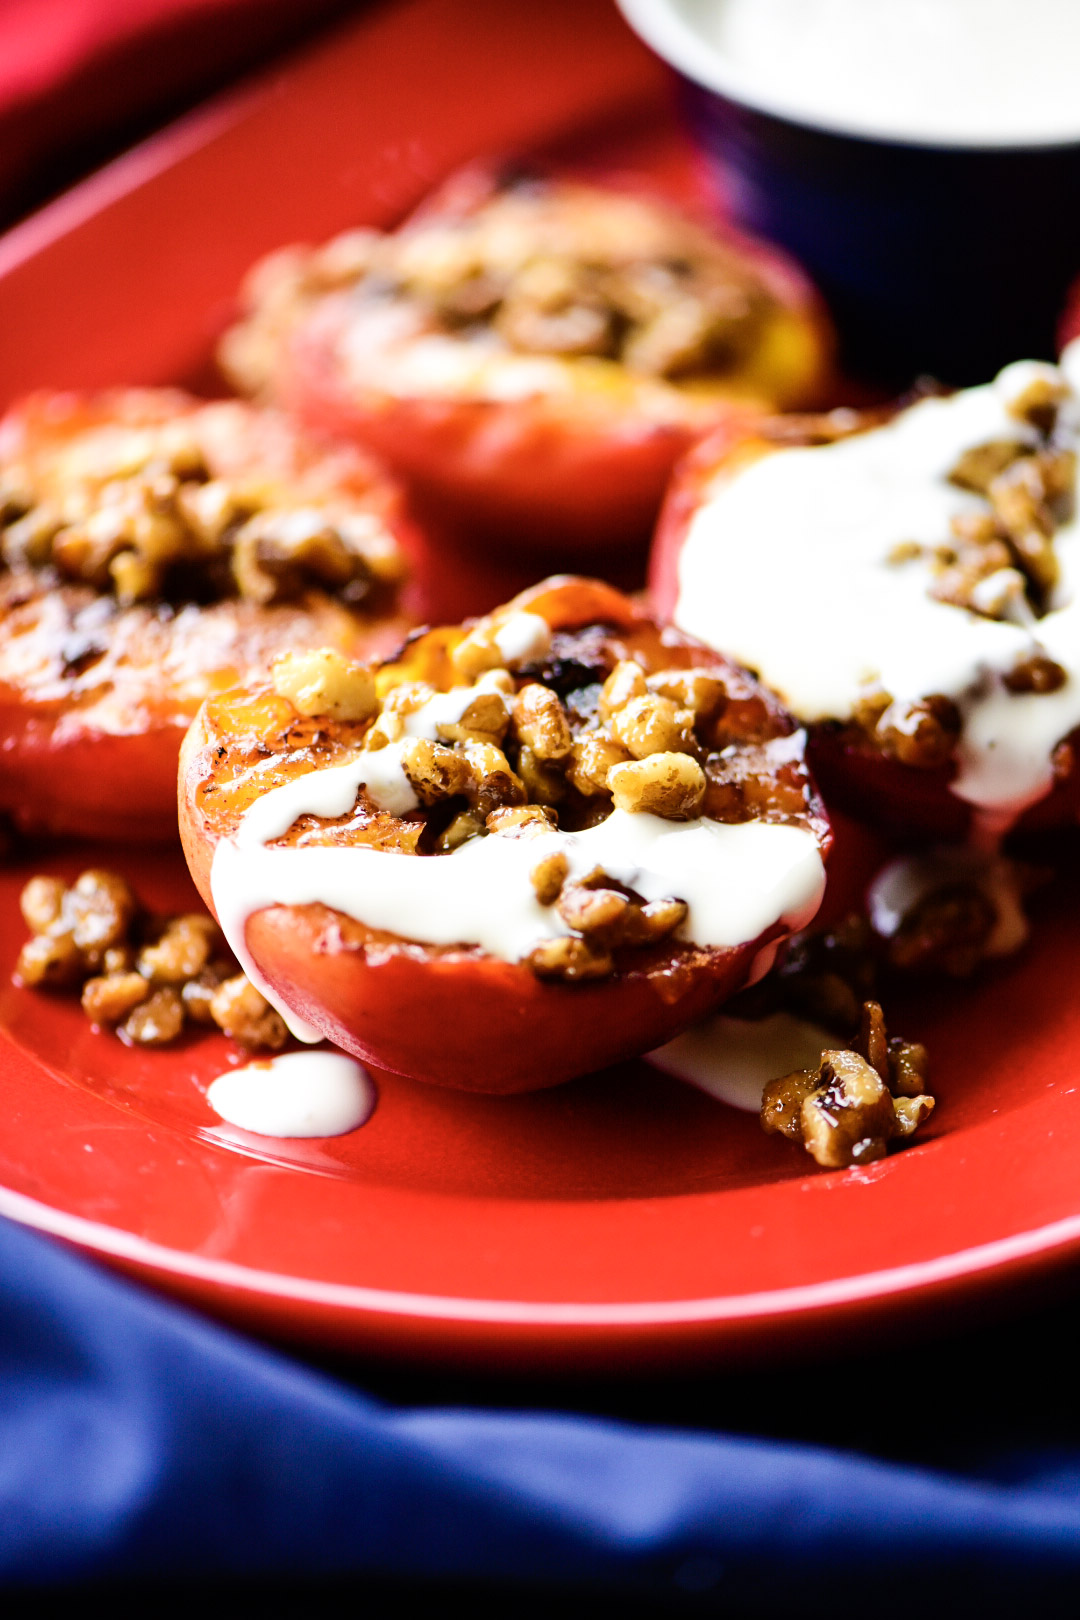 grilled peaches with candies walnuts and cream